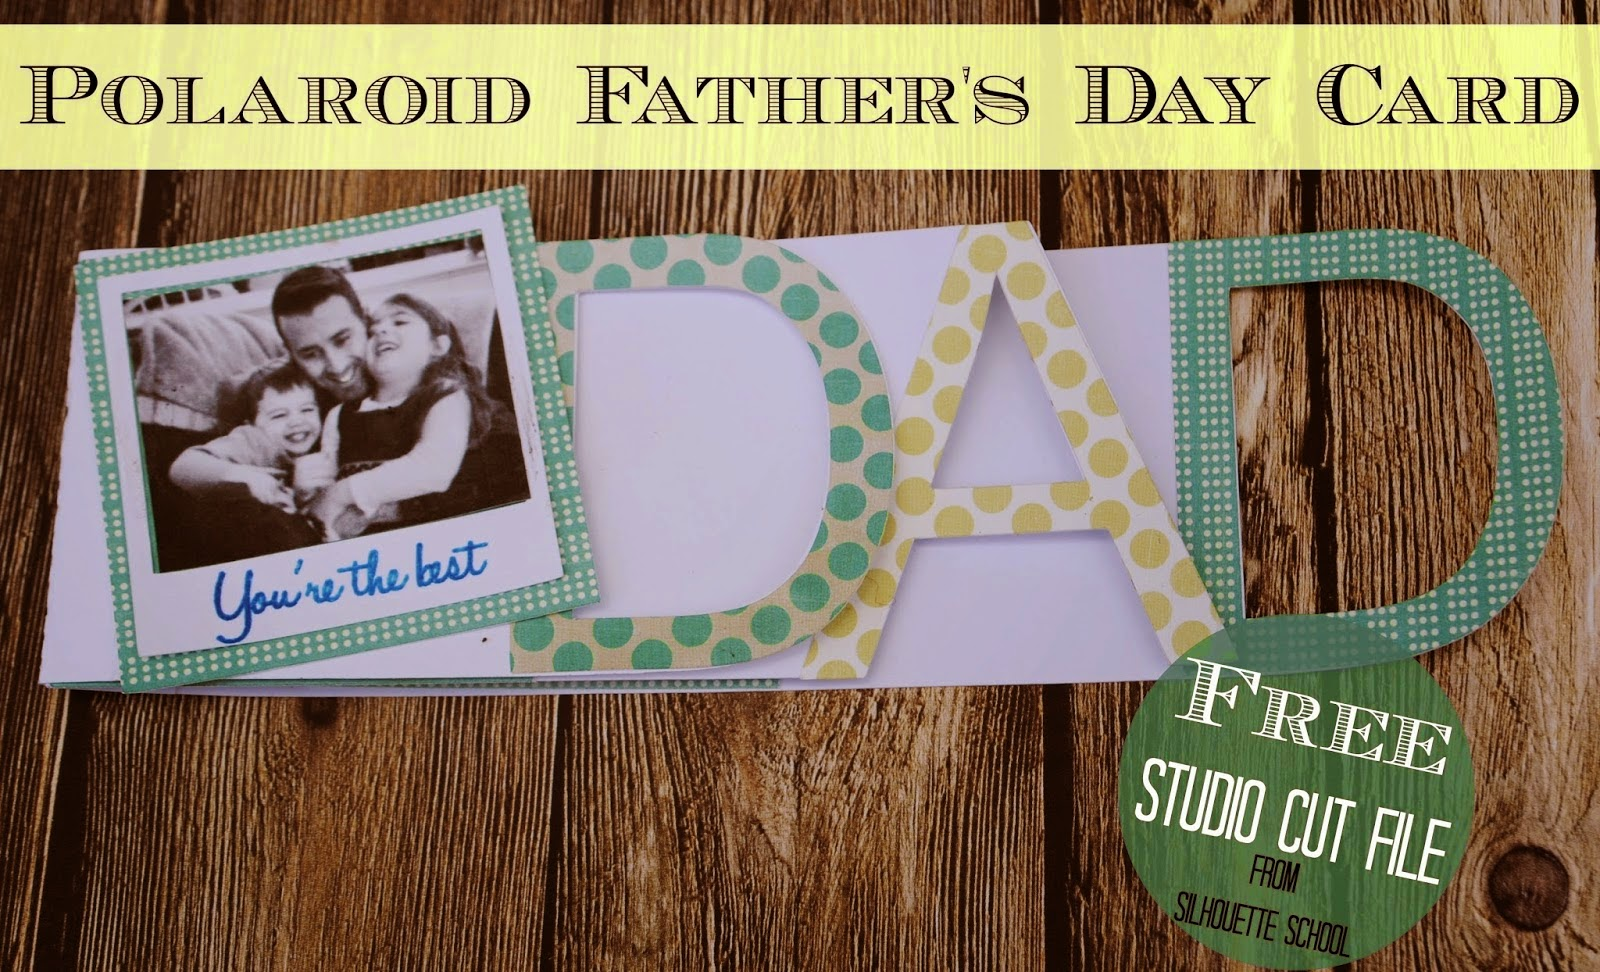 http://silhouetteschool.blogspot.com/2014/05/polaroid-fathers-day-card-free.html